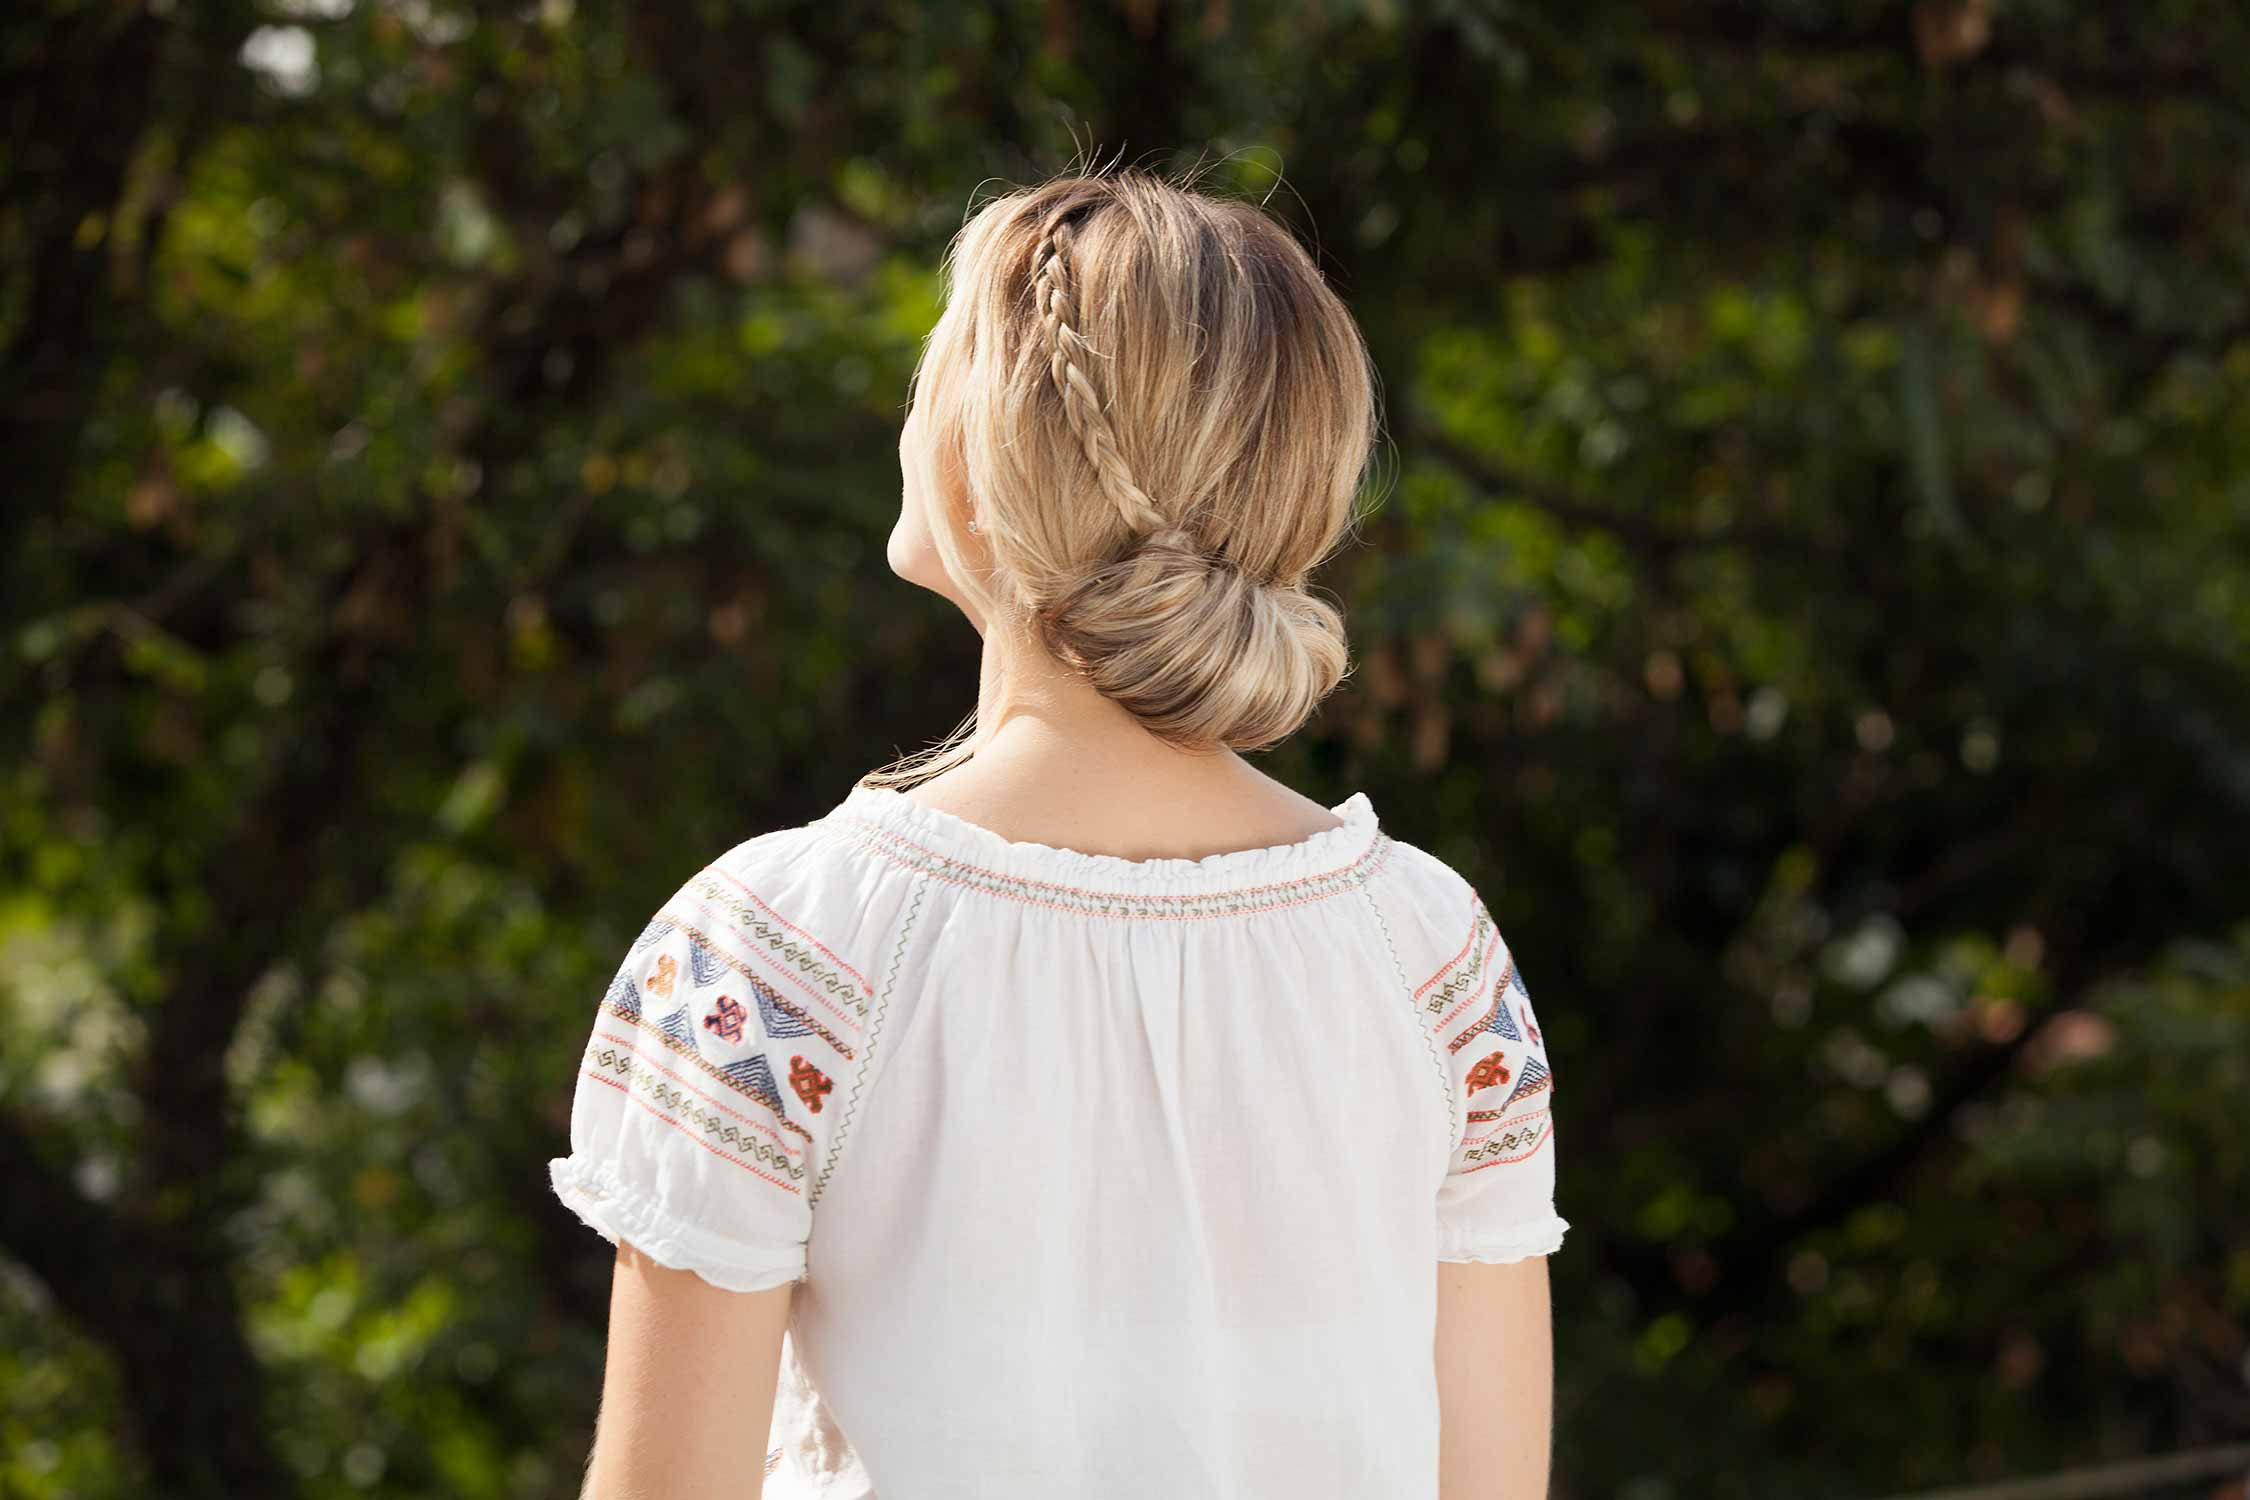 Festival hair: back view of a woman with highlighted blonde straight hair styled in a boho chignon with single braid detail in outside image